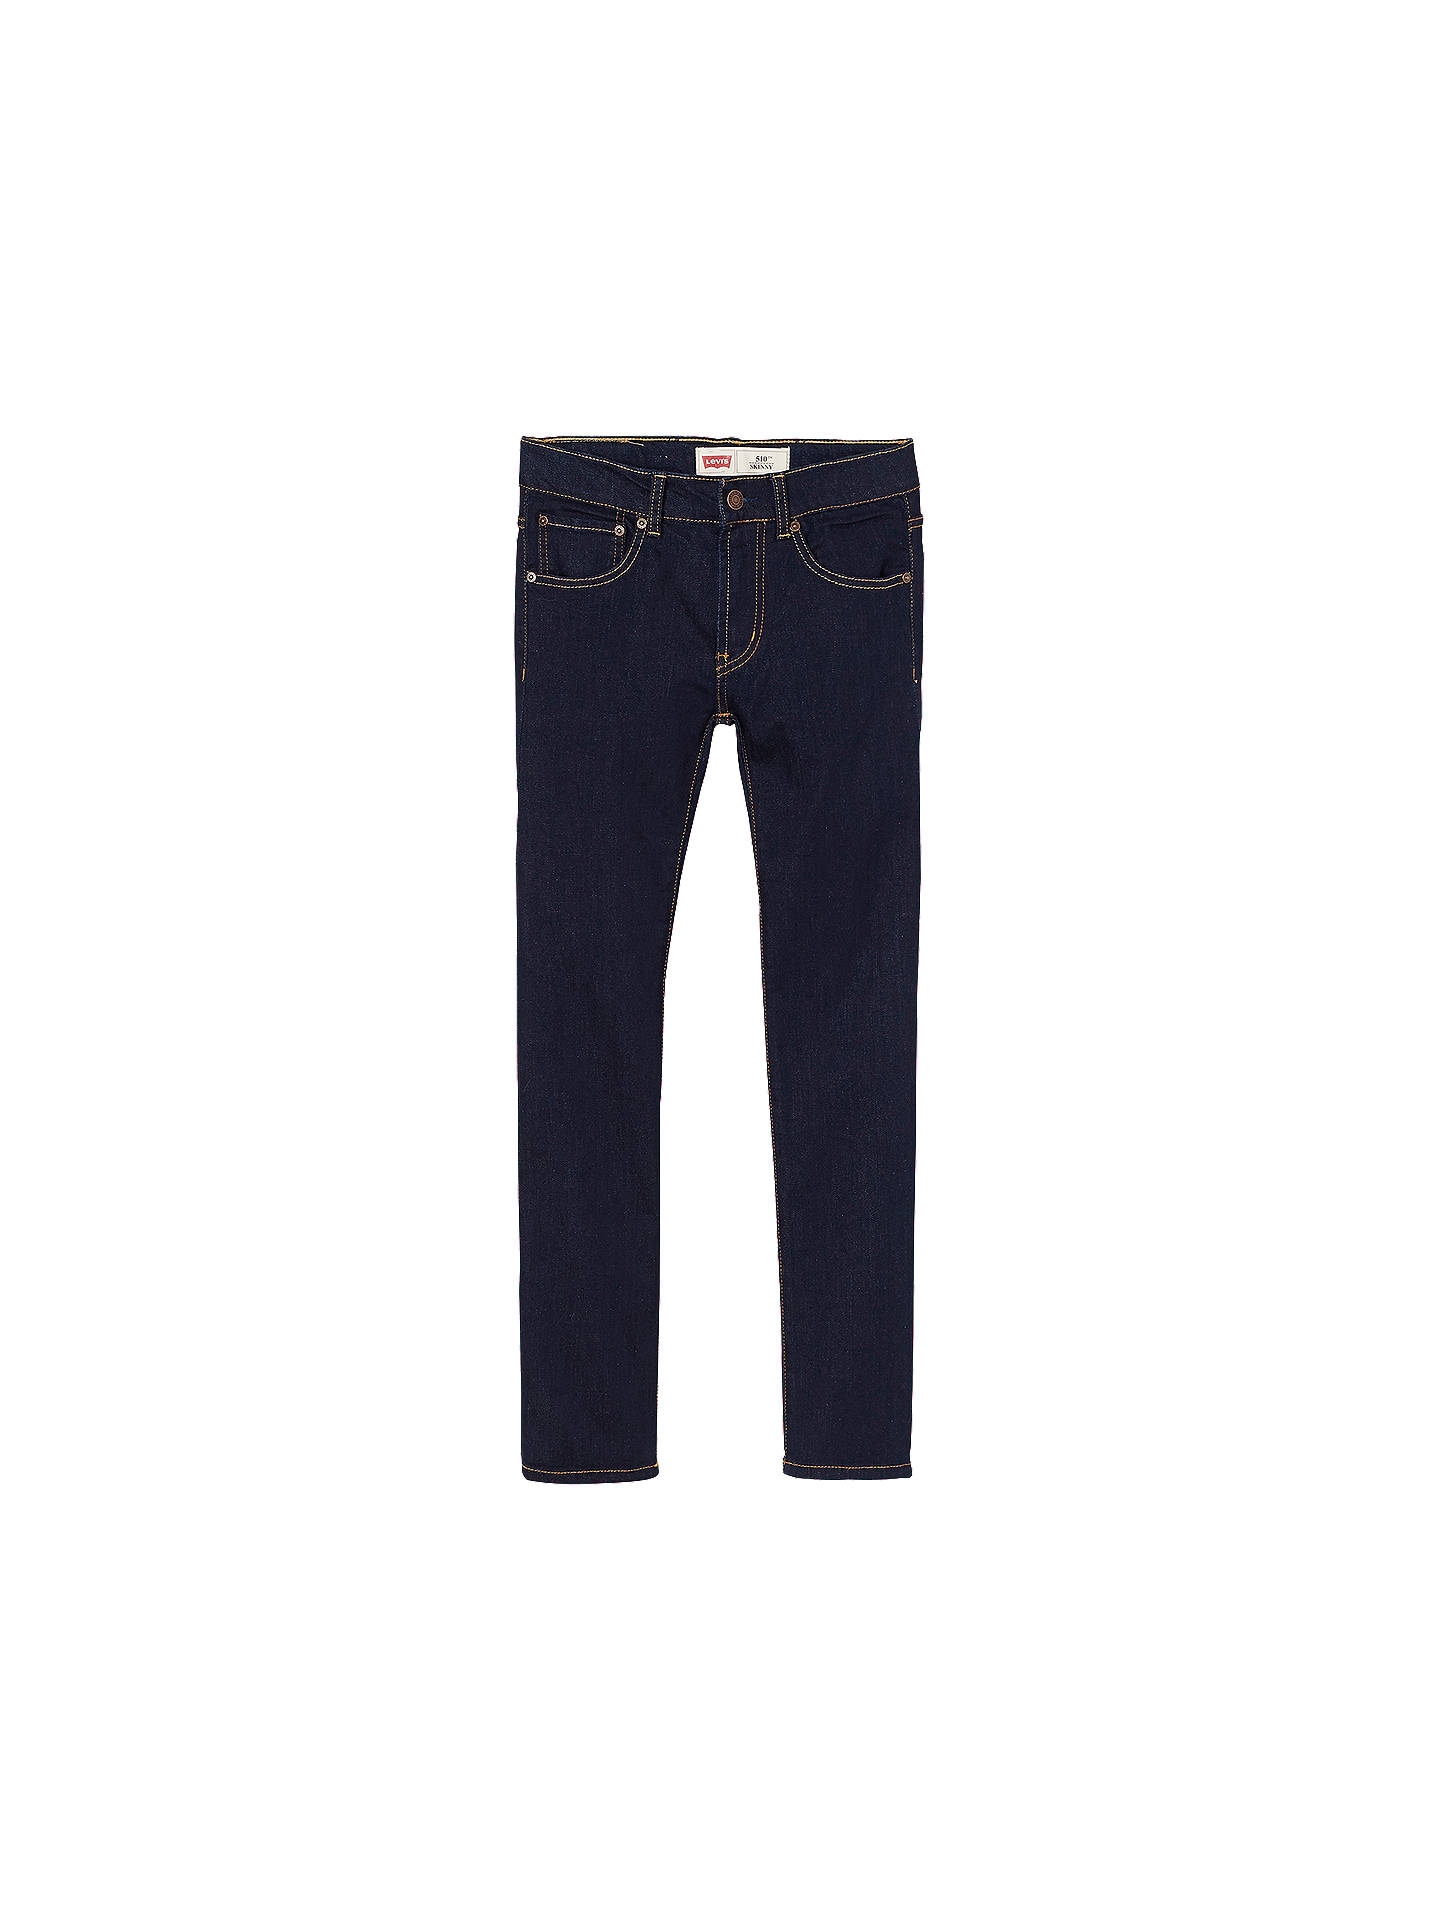 e7e6c027b Buy Levi's Boys' 510 Skinny Fit Denim Jeans, Indigo, 4 years Online at ...